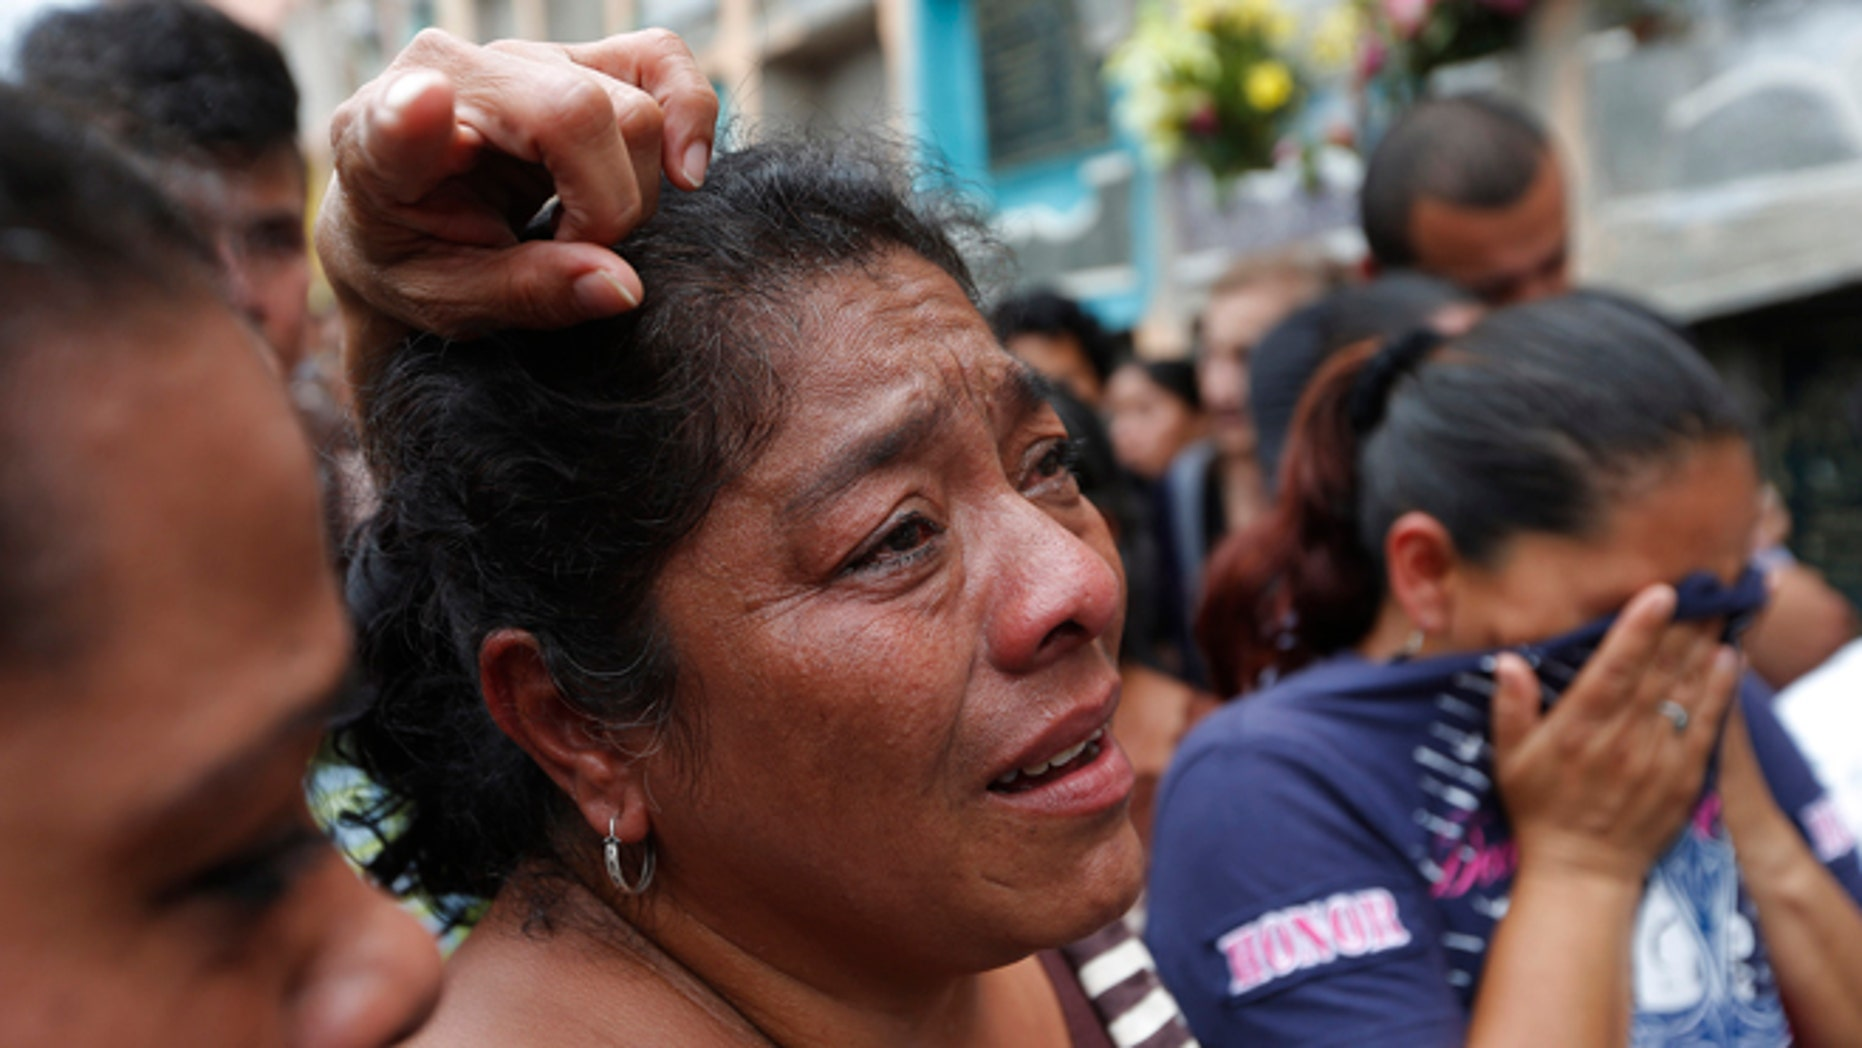 Relatives weep during the burial of Amilcar Estrada and his 10-year-old niece Maria Jose, who died in a mudslide, in the Santa Catarina Pinula cemetery on the outskirts of Guatemala City, Sunday, Oct. 4, 2015. Rescue workers recovered more bodies Saturday after a hillside collapsed on homes late Thursday, while more are feared still buried in the rubble. (AP Photo/Moises Castillo)